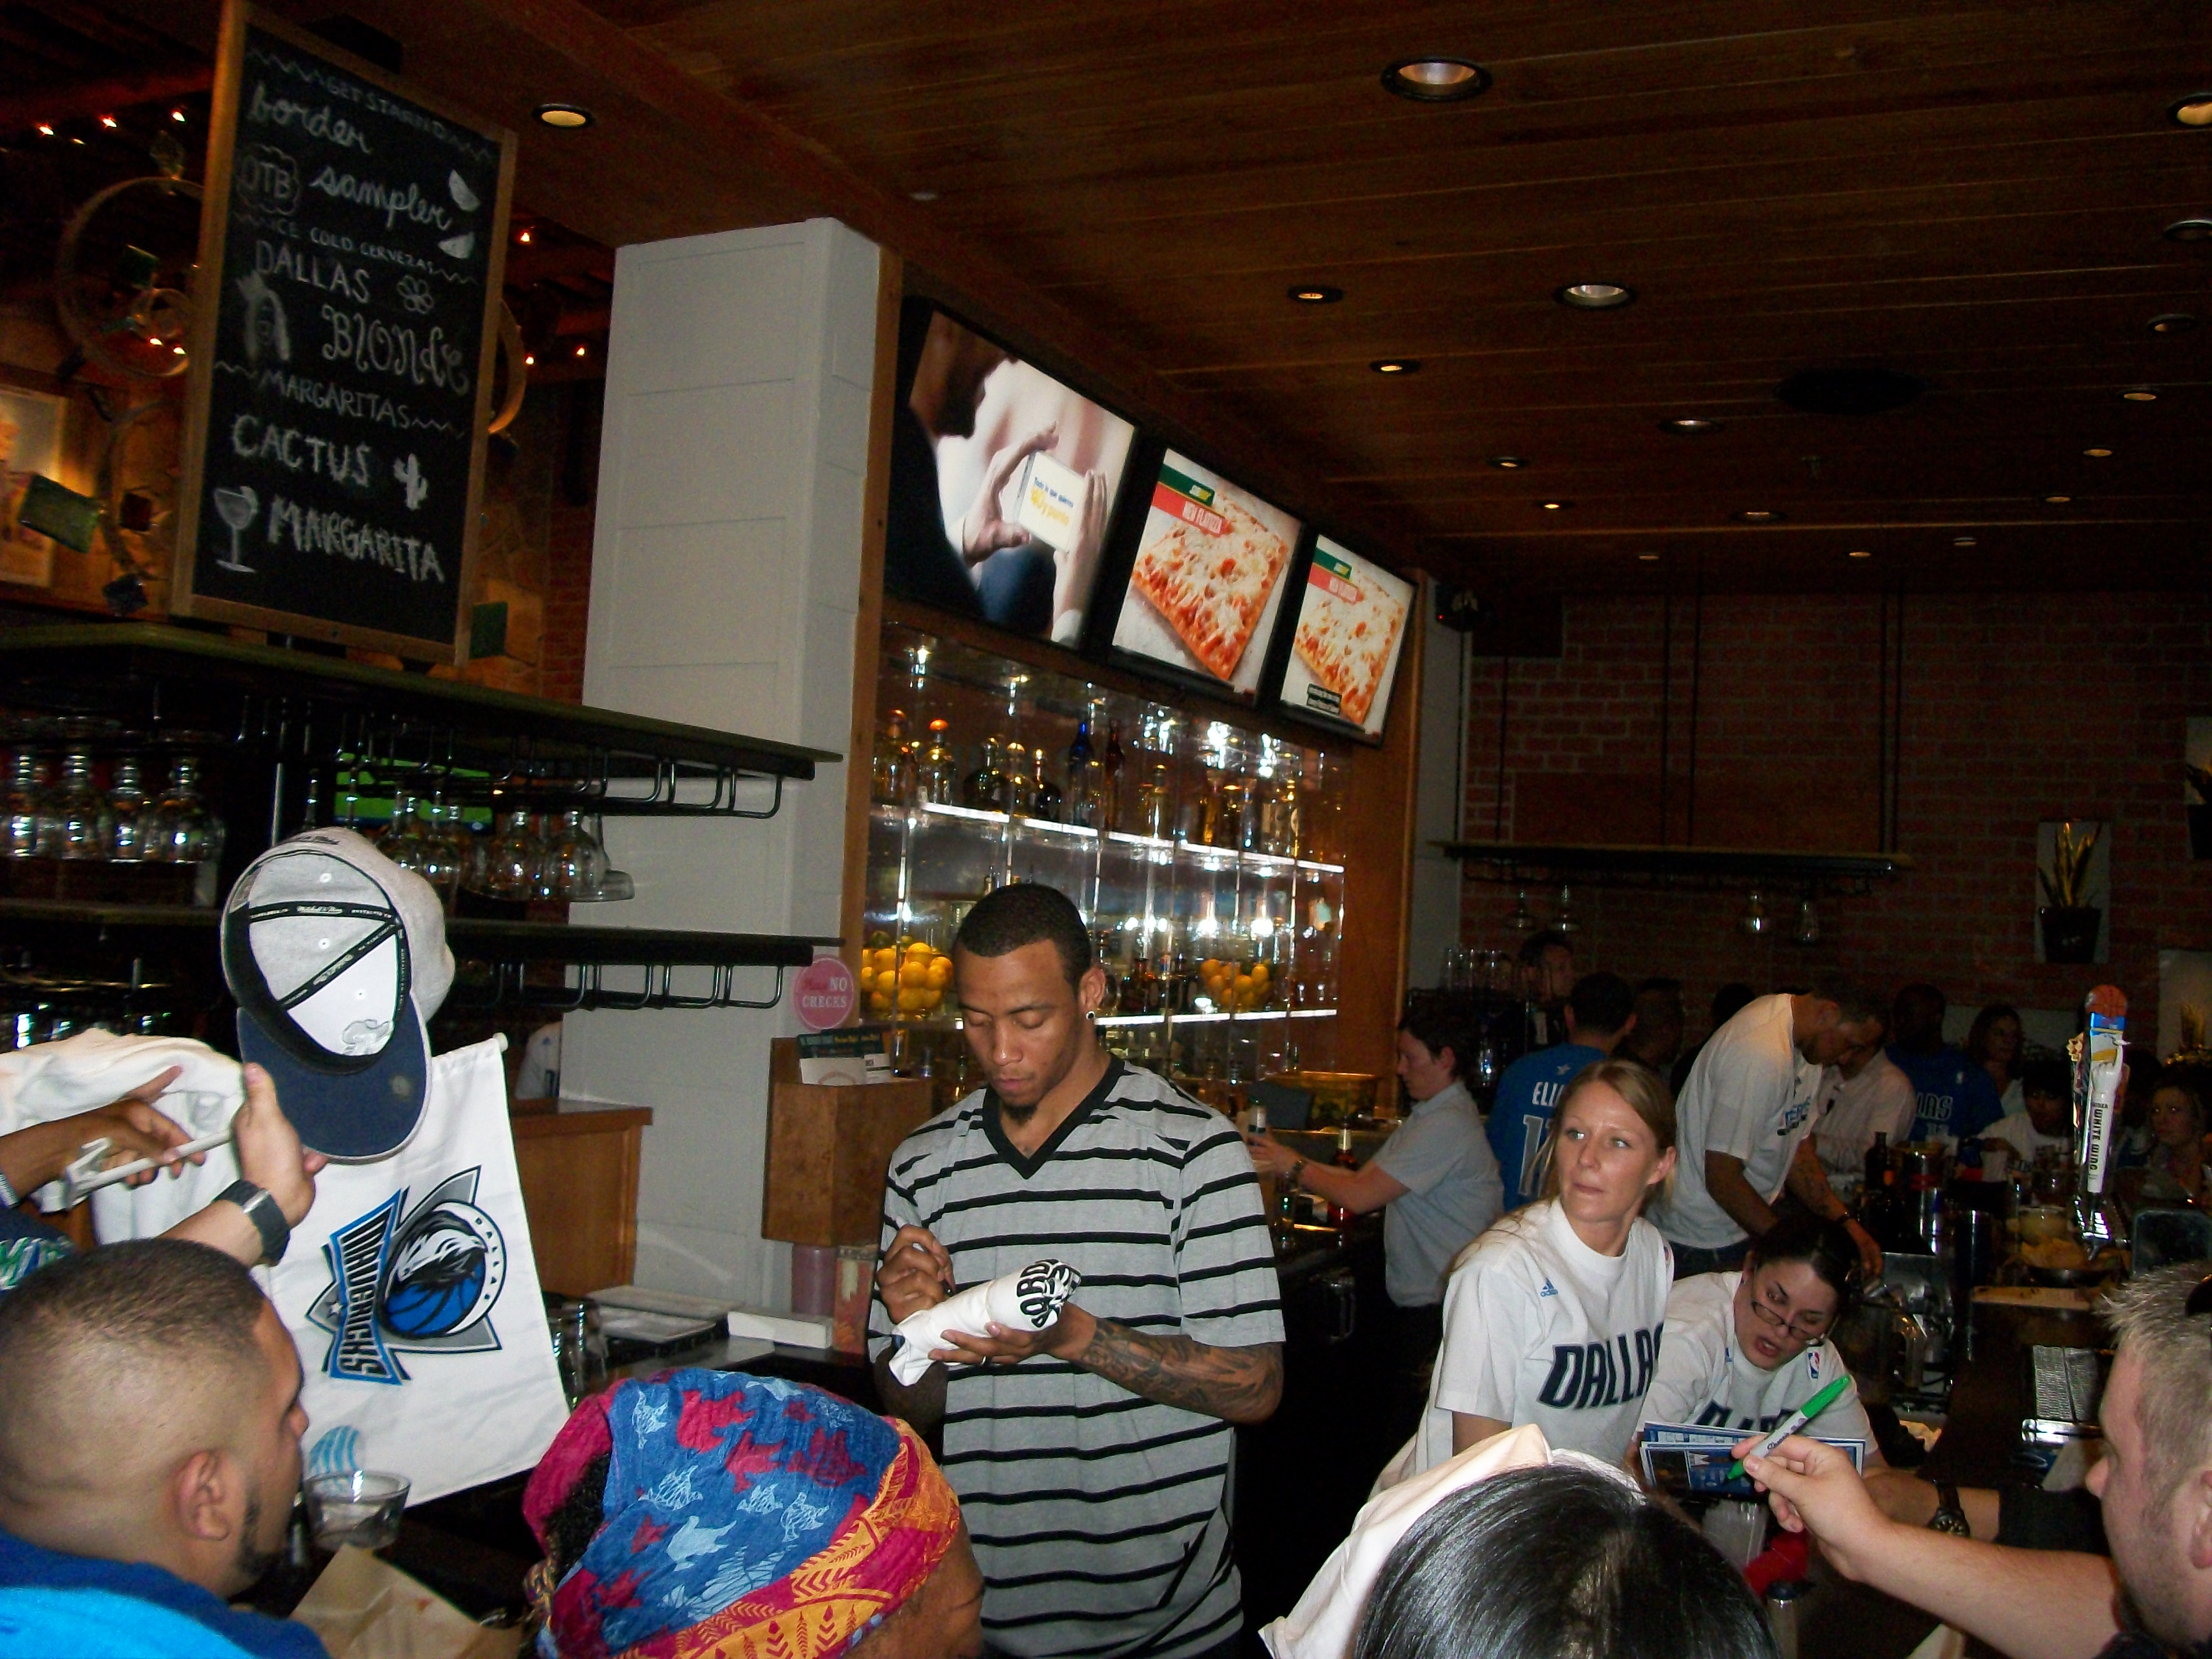 monta ellis and shawn marion show off their bartending skills 20140315 051250 jpg